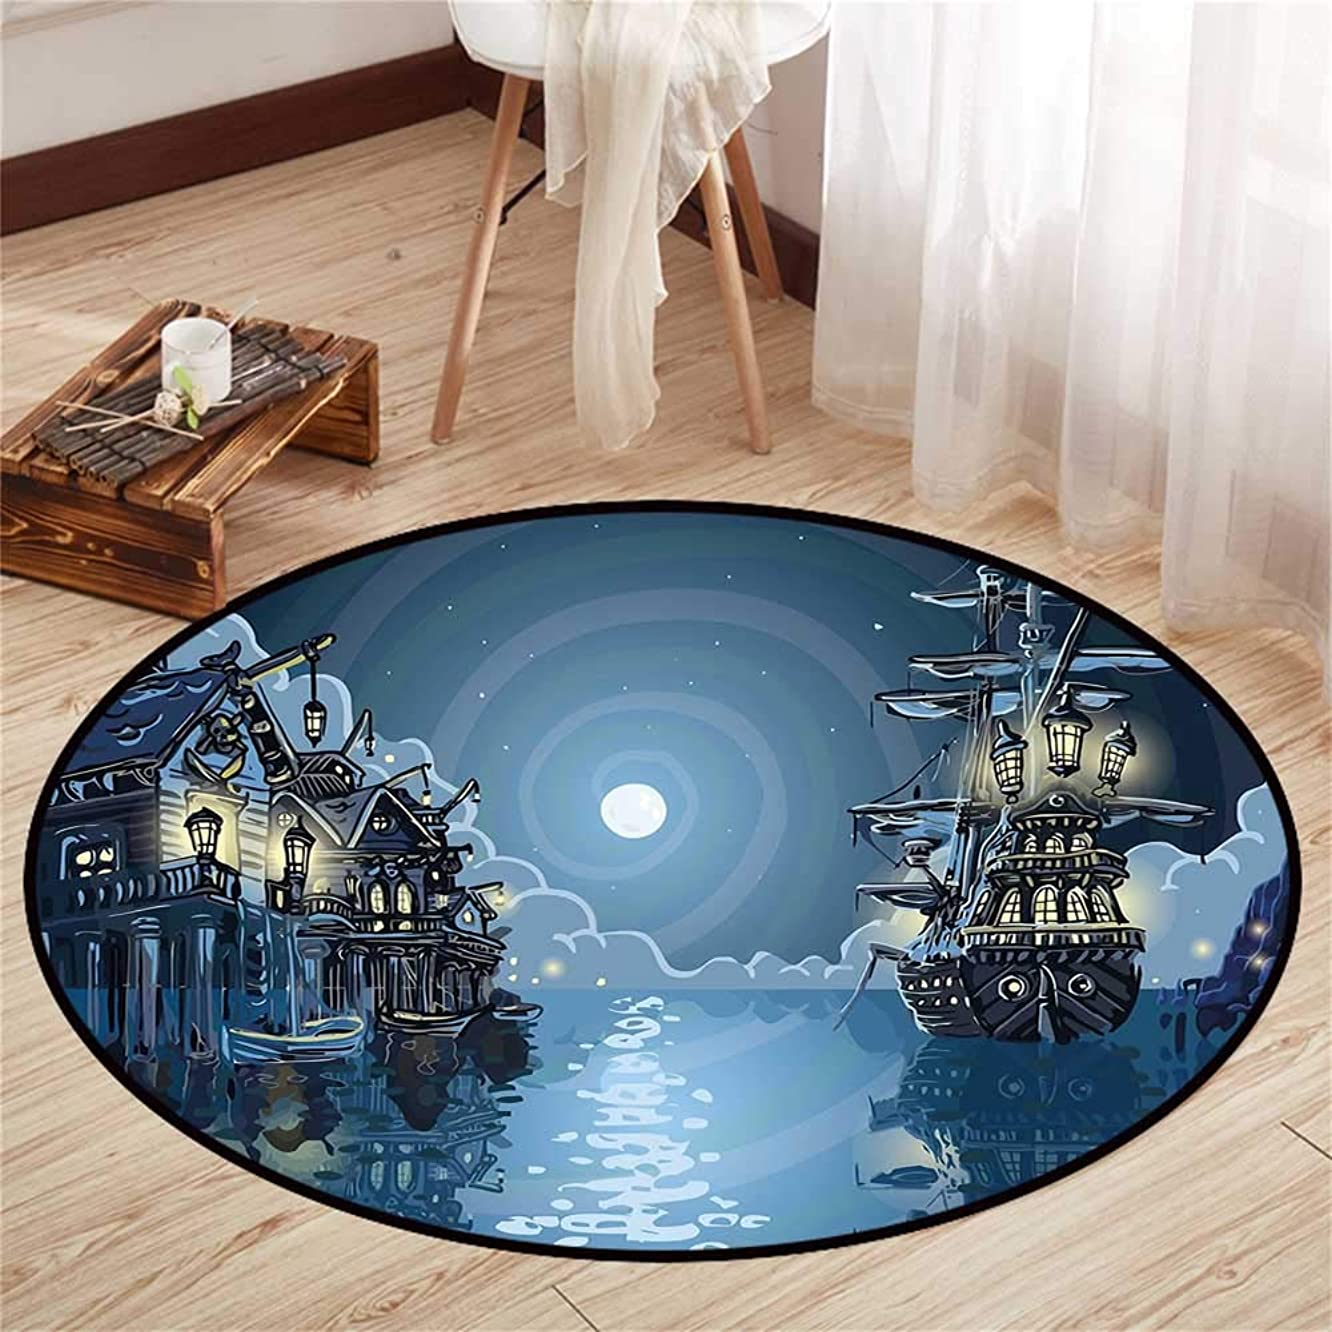 Round Floor mat for Baby Round Indoor Floor mat Entrance Circle Floor mat for Office Chair Wood Floor Circle Floor mat Office Round mat for Living Room Pattern 3'3